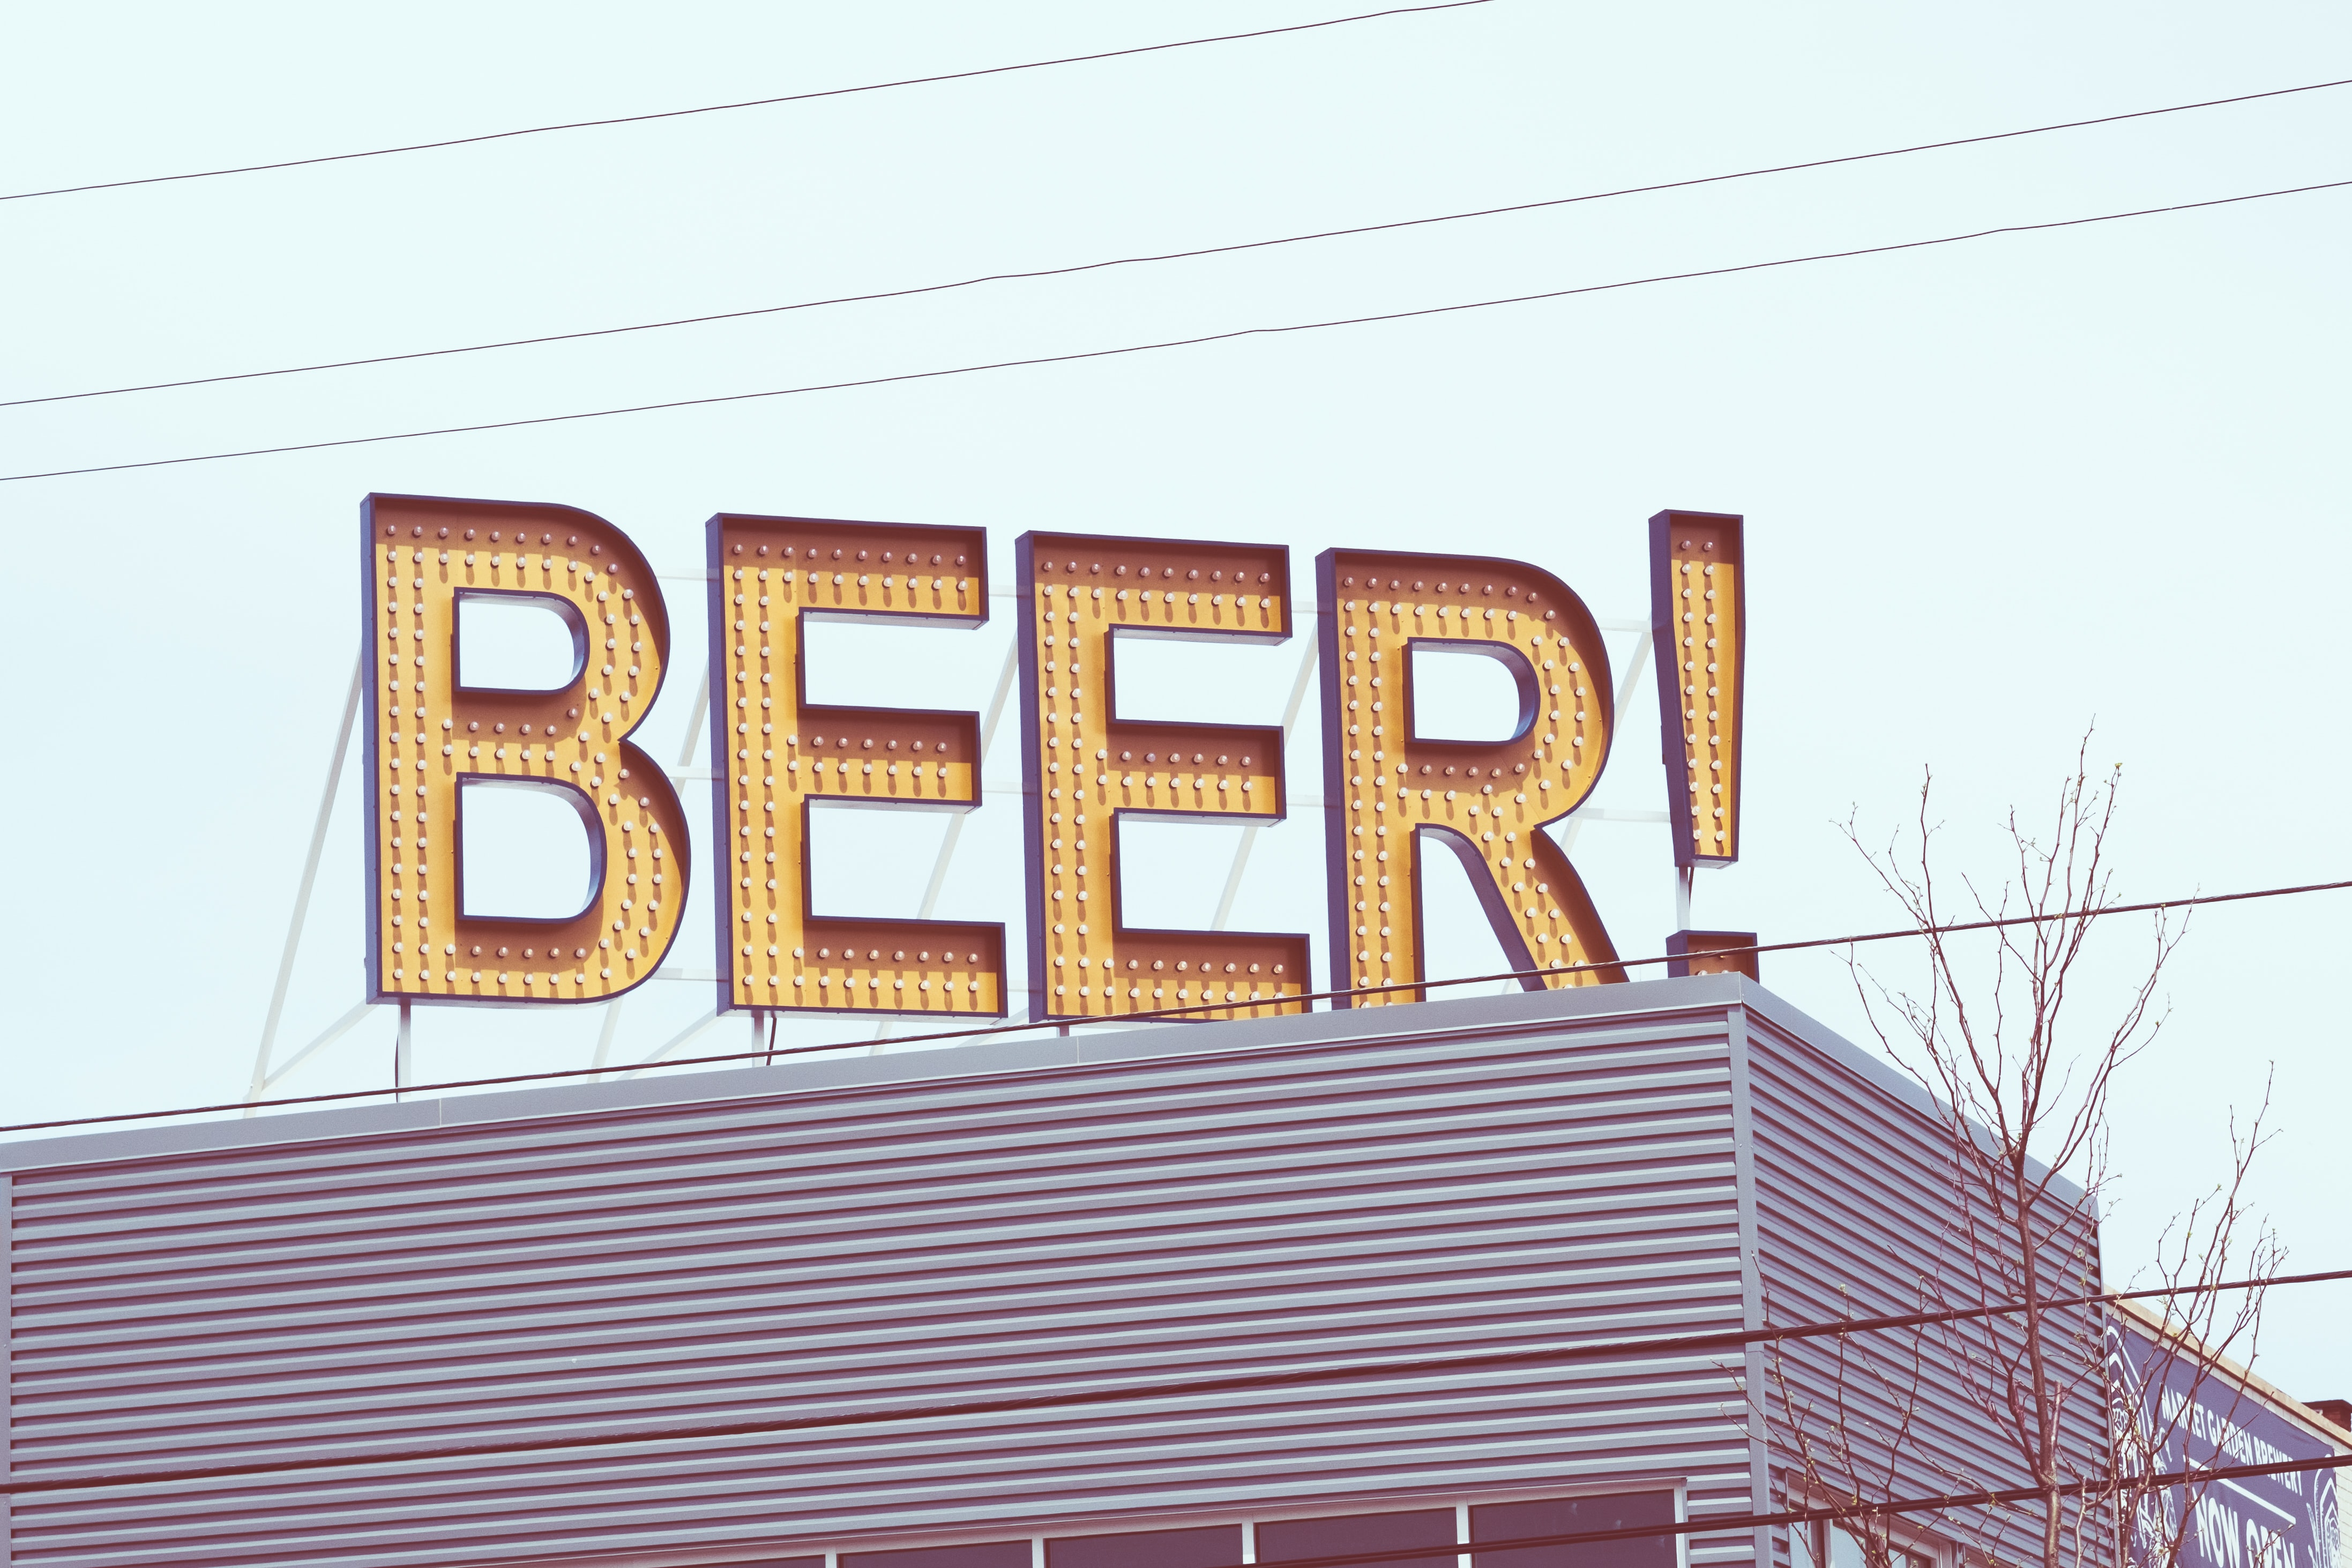 A beer sign with small lights on it on a bar